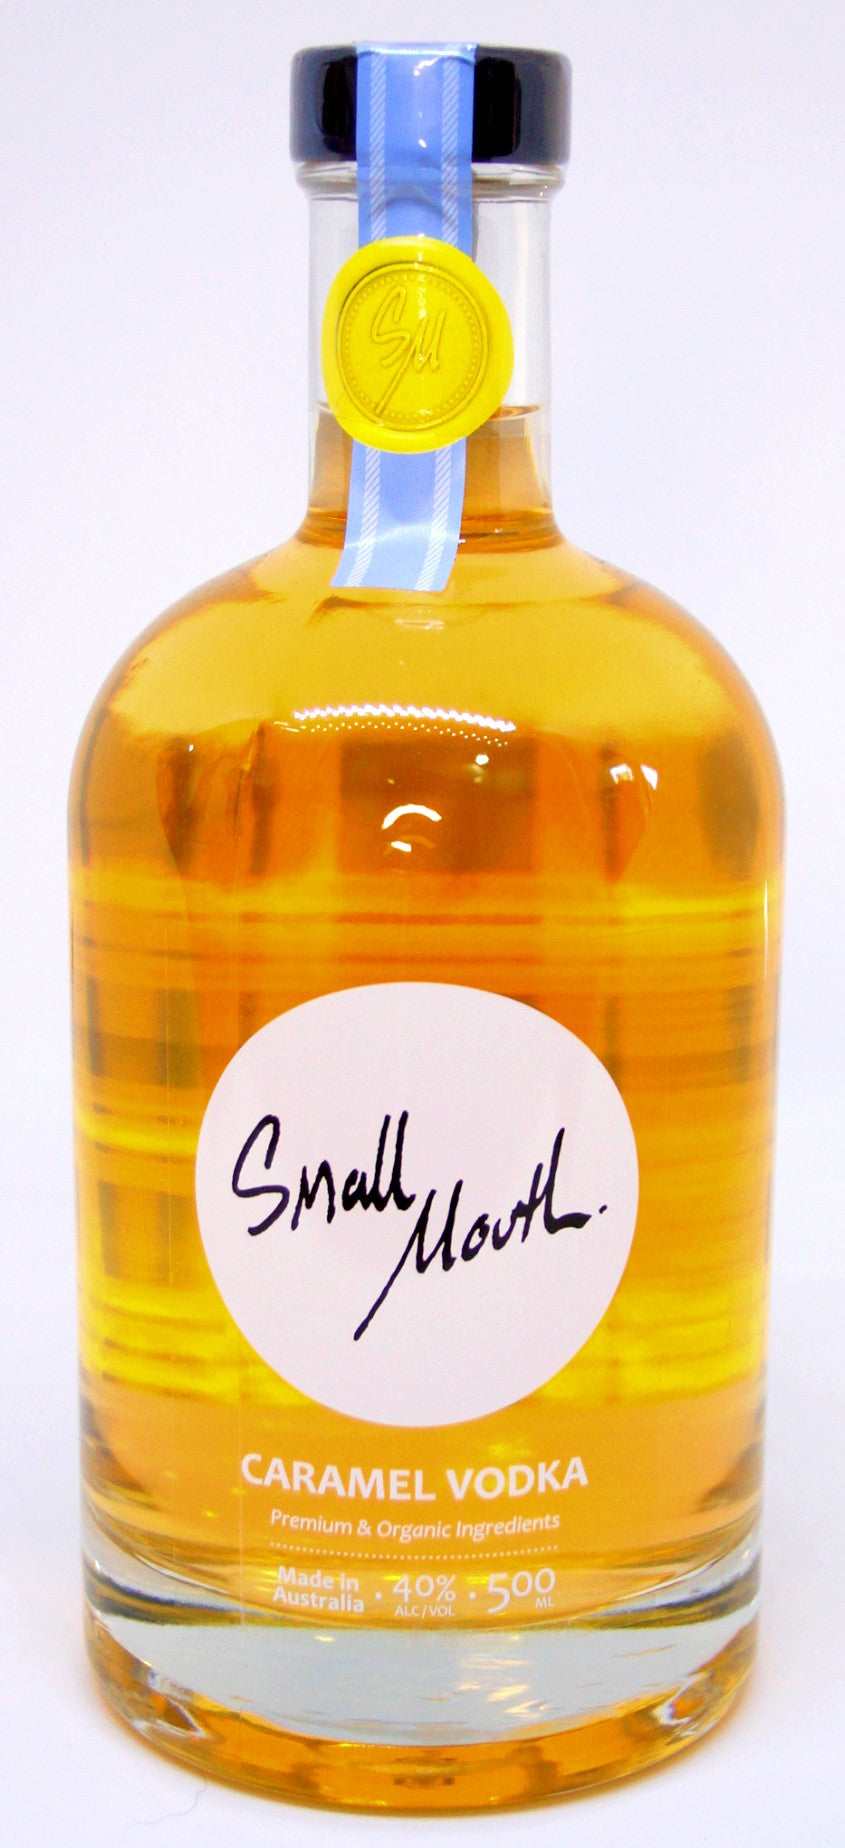 Small Mouth Caramel Vodka